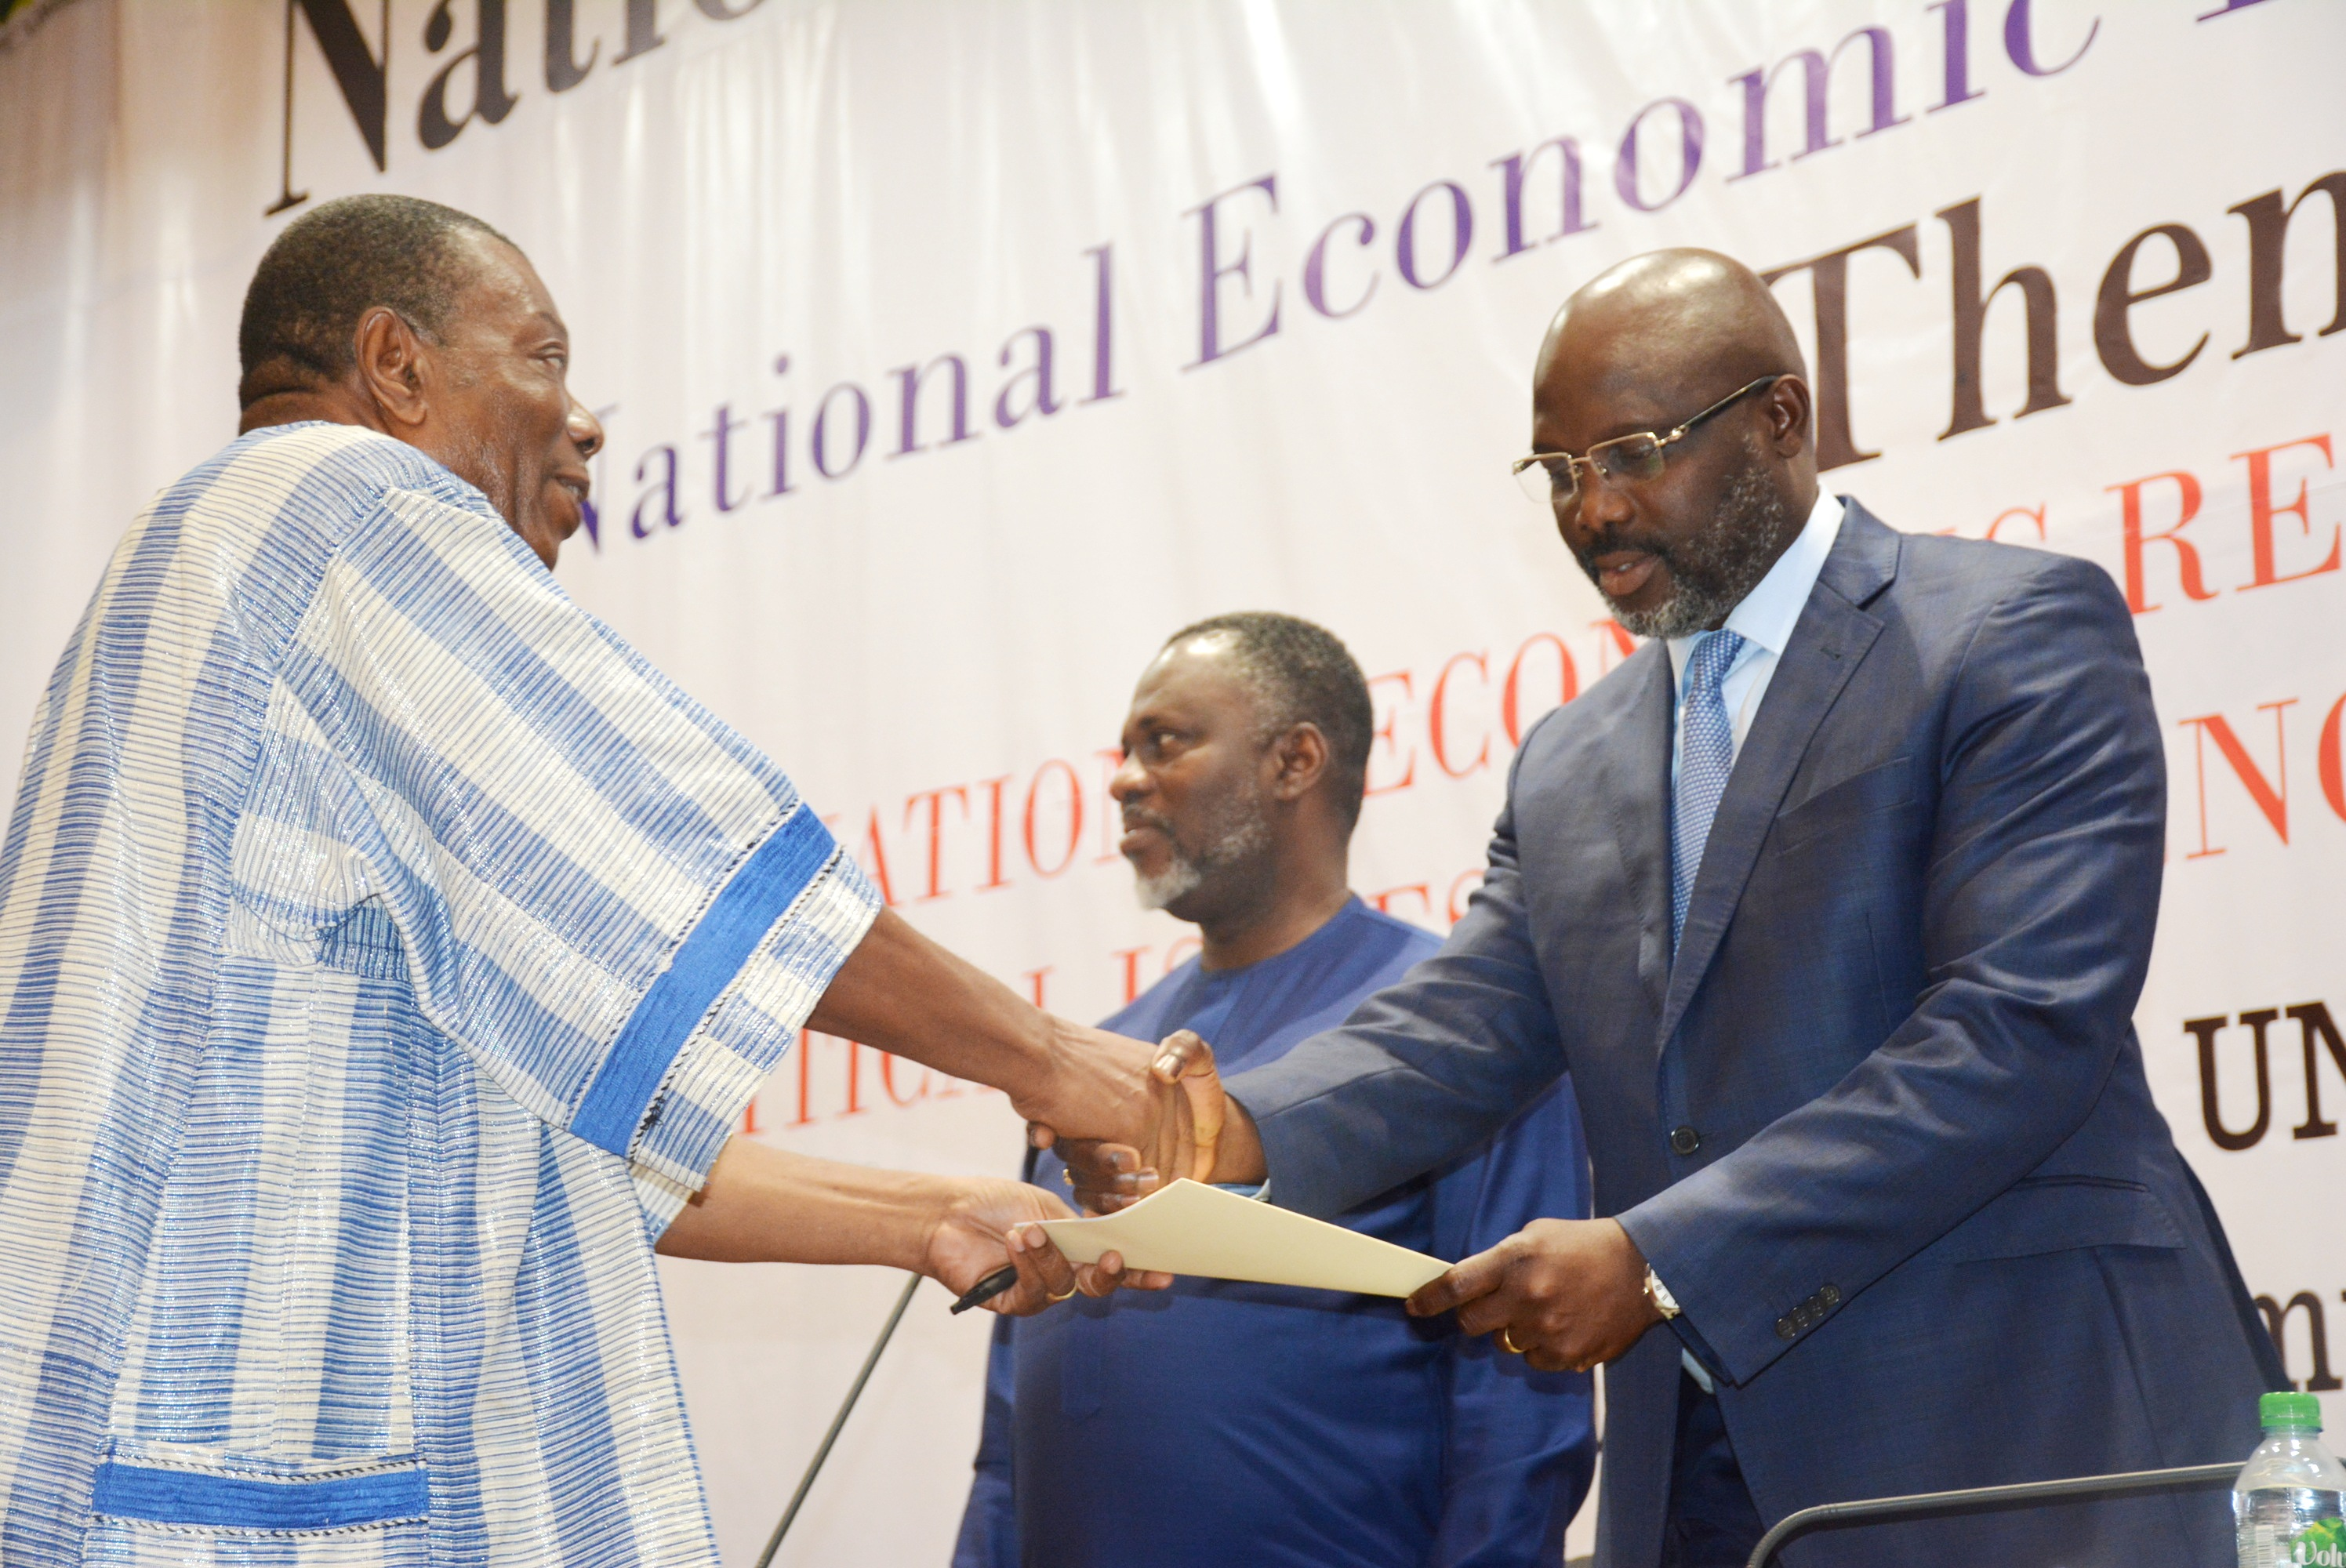 Finding Economic Solution: President George Manneh Weah commits to implementation of National Dialogue Recommendations